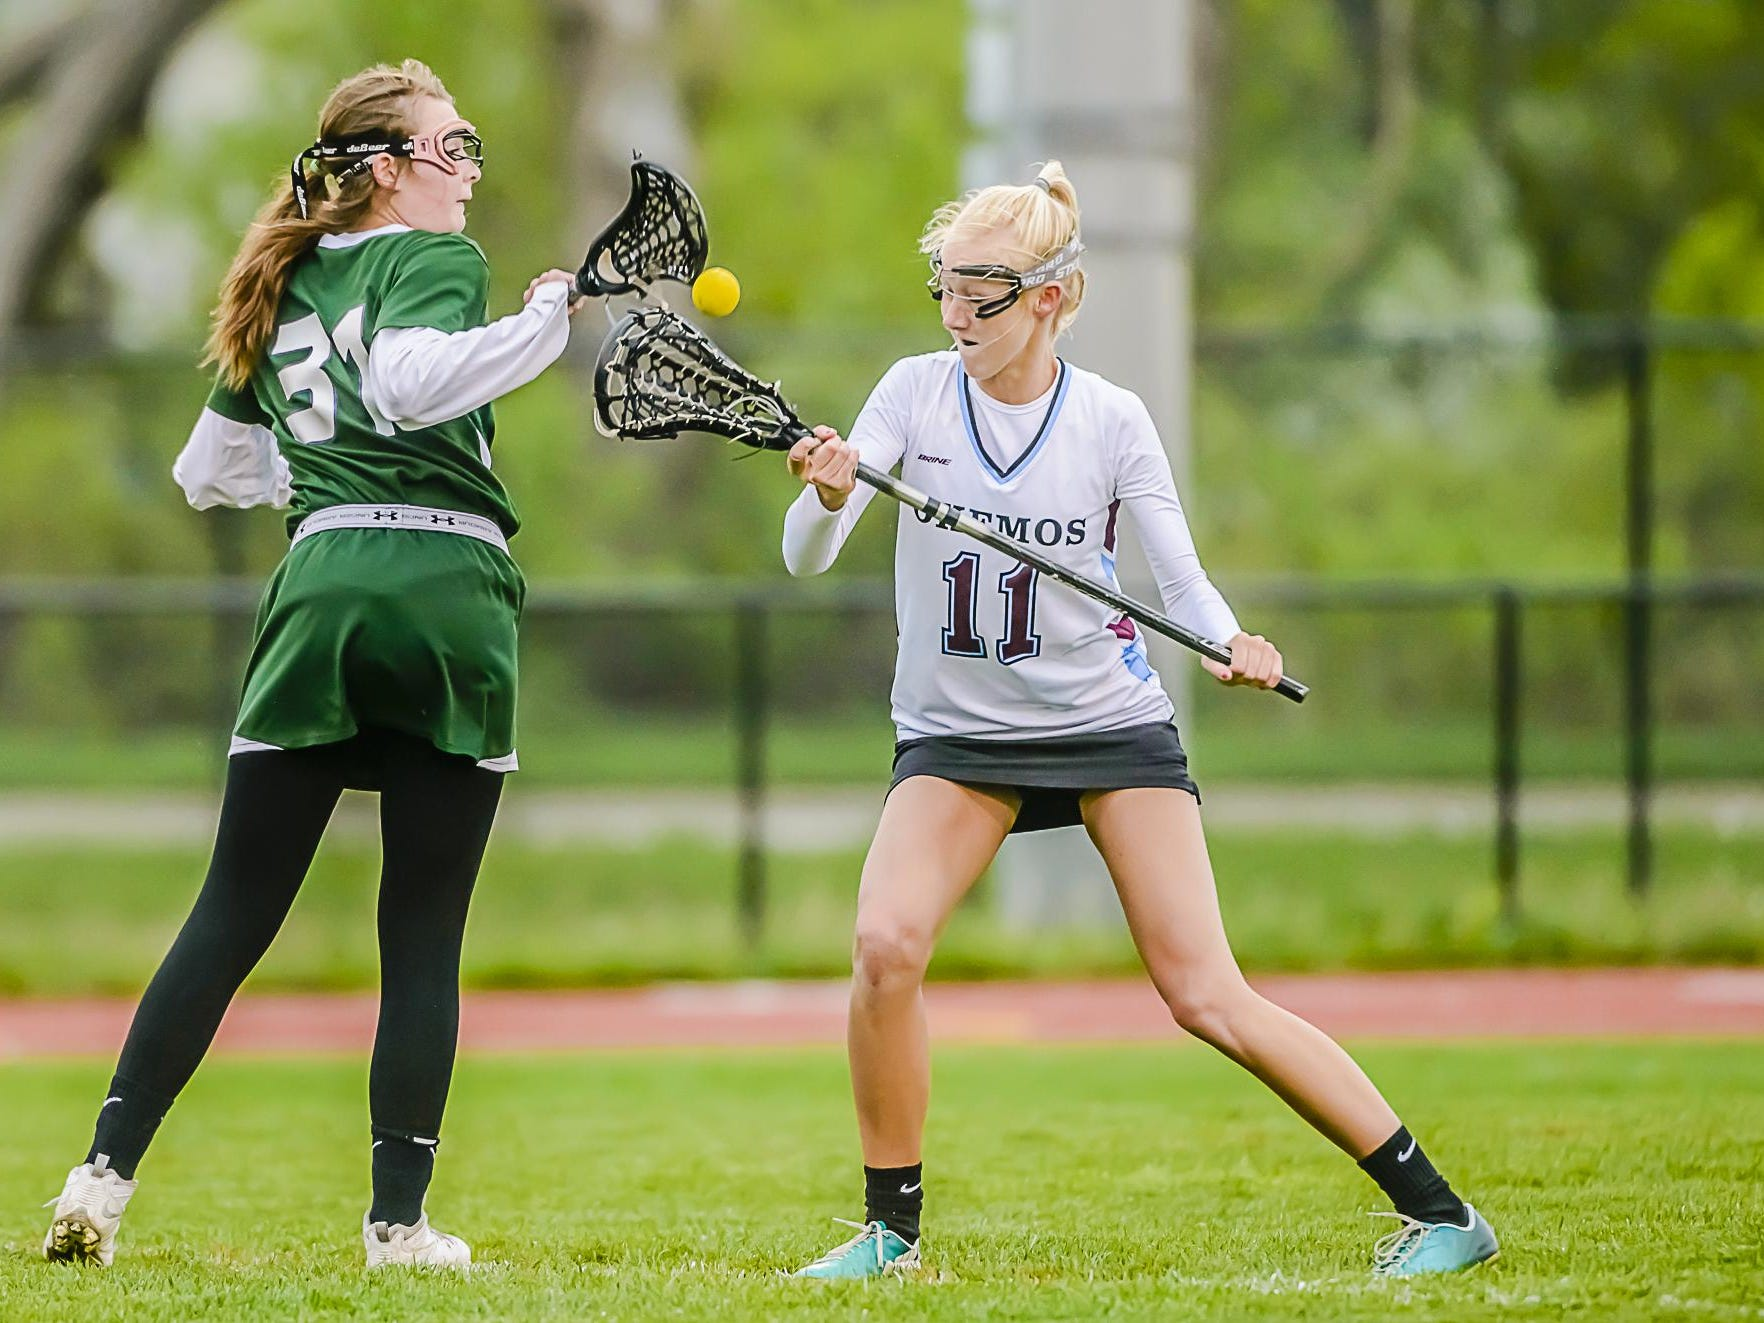 Okemos' Natalie Bloniarz (11) had 39 goals and 31 assists while earning first team all-state honors.